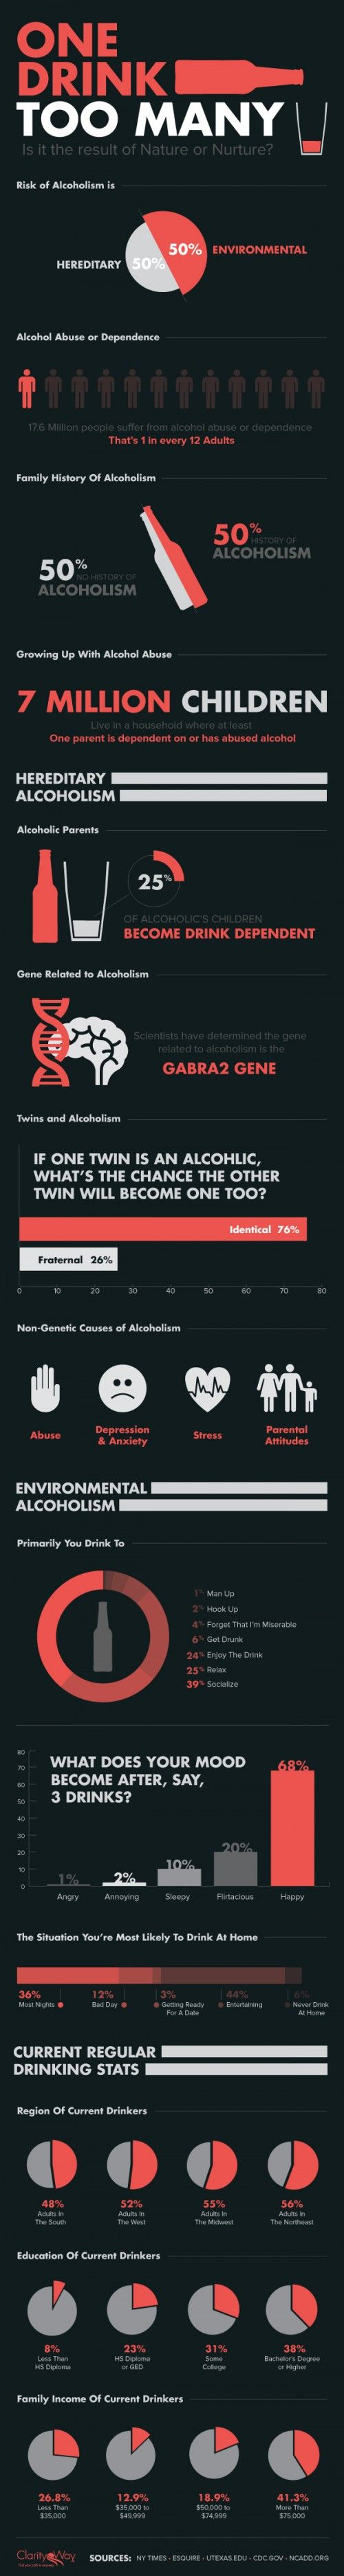 One Drink Too Many – Infographic on http://www.bestinfographic.co.uk